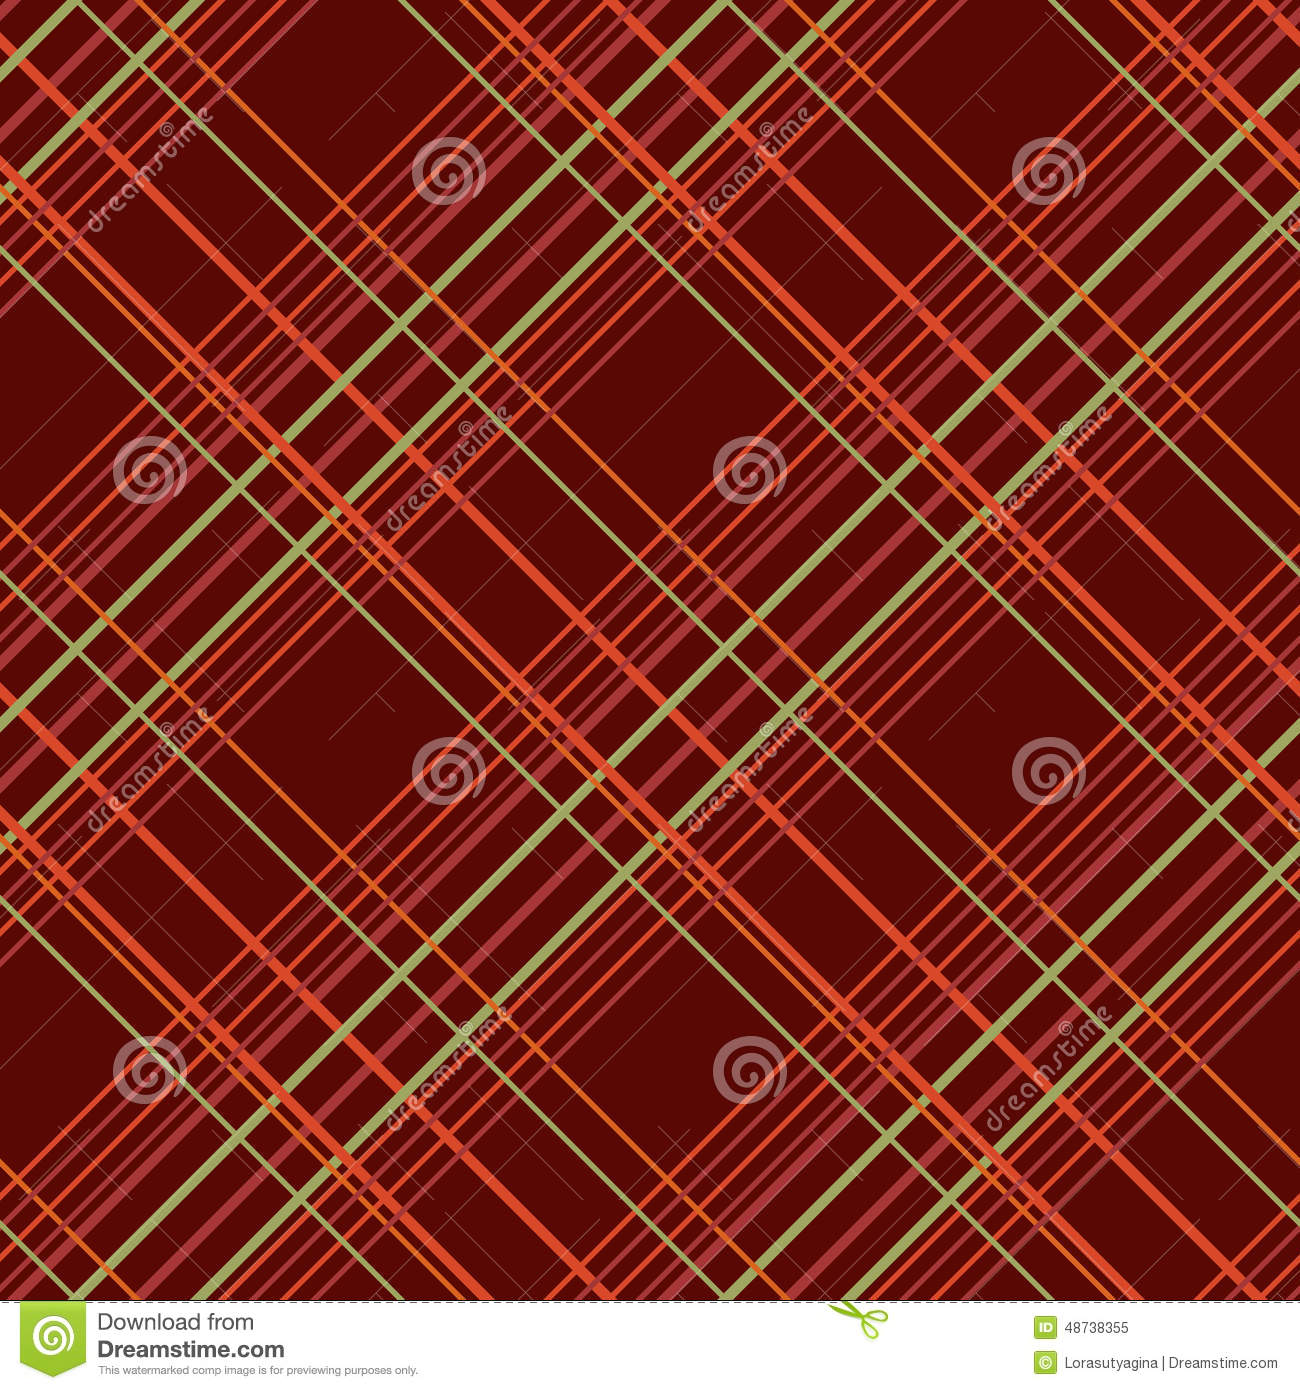 abstract seamless pattern with plaid fabric on a dark brown background stock vector image. Black Bedroom Furniture Sets. Home Design Ideas